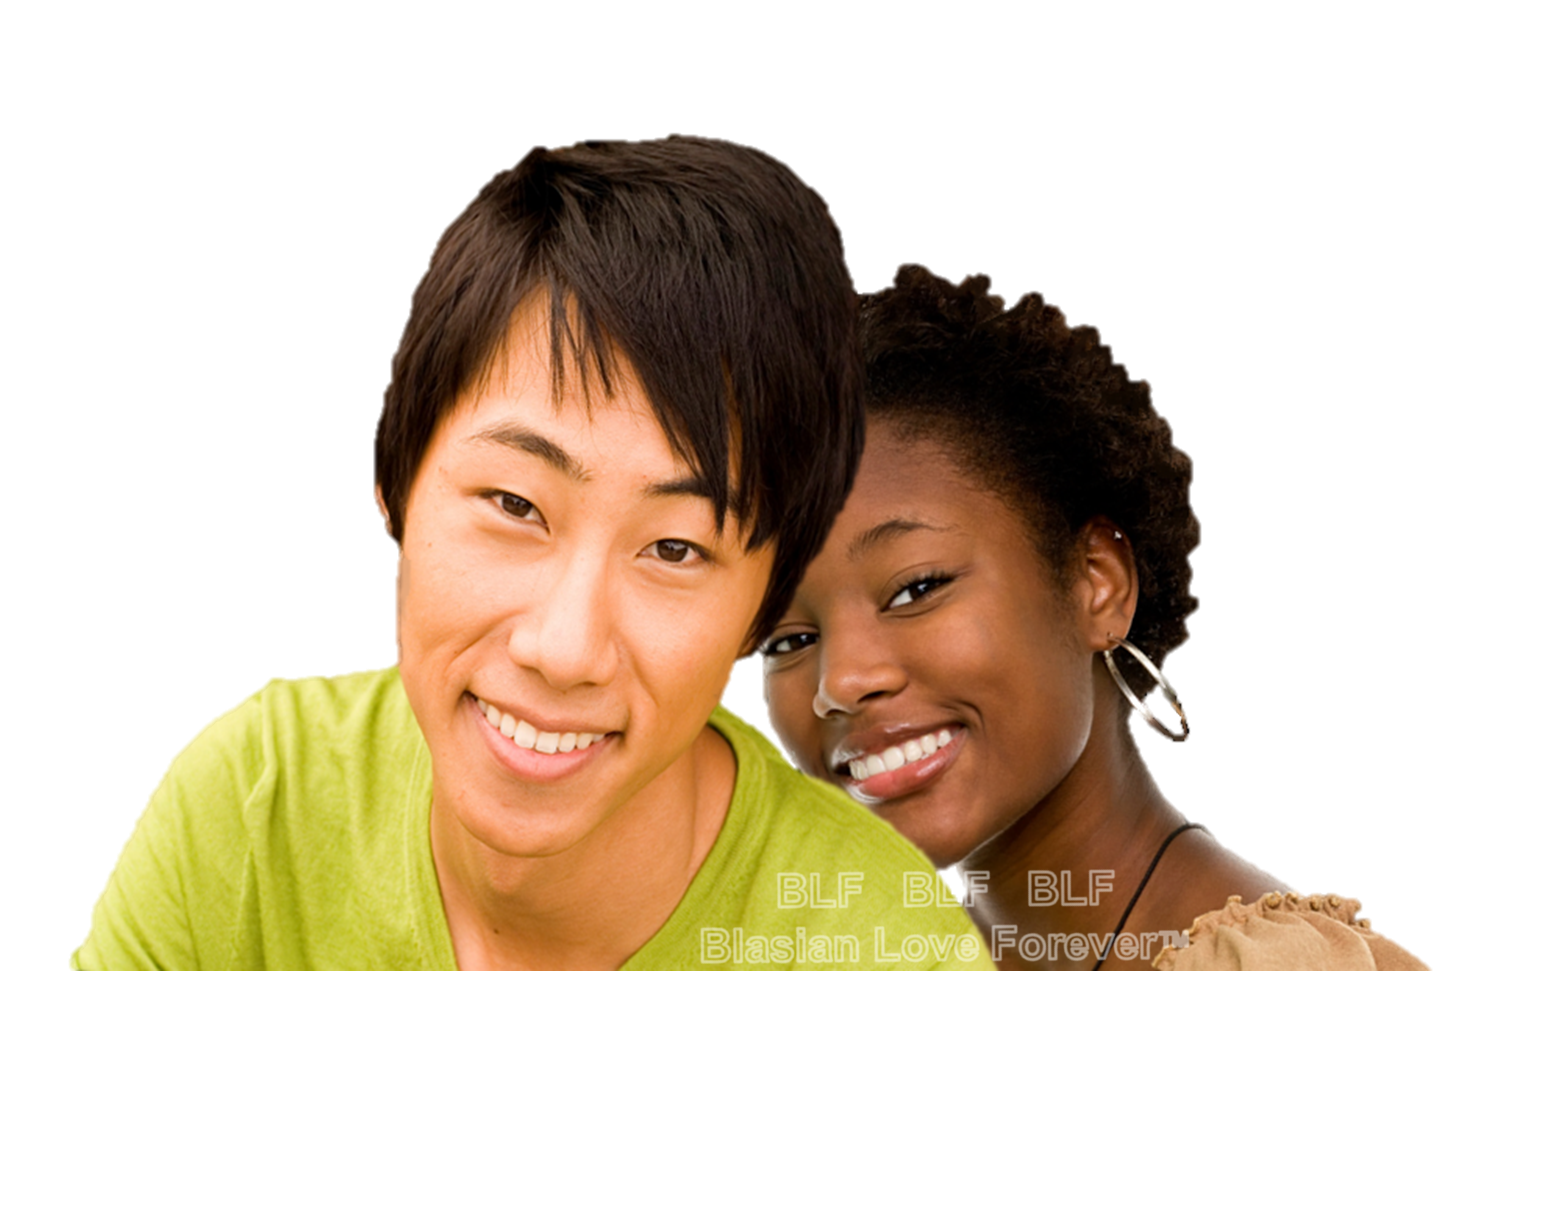 rhisnes black women dating site Find meetups about black singles and meet people in your local community who share your interests.